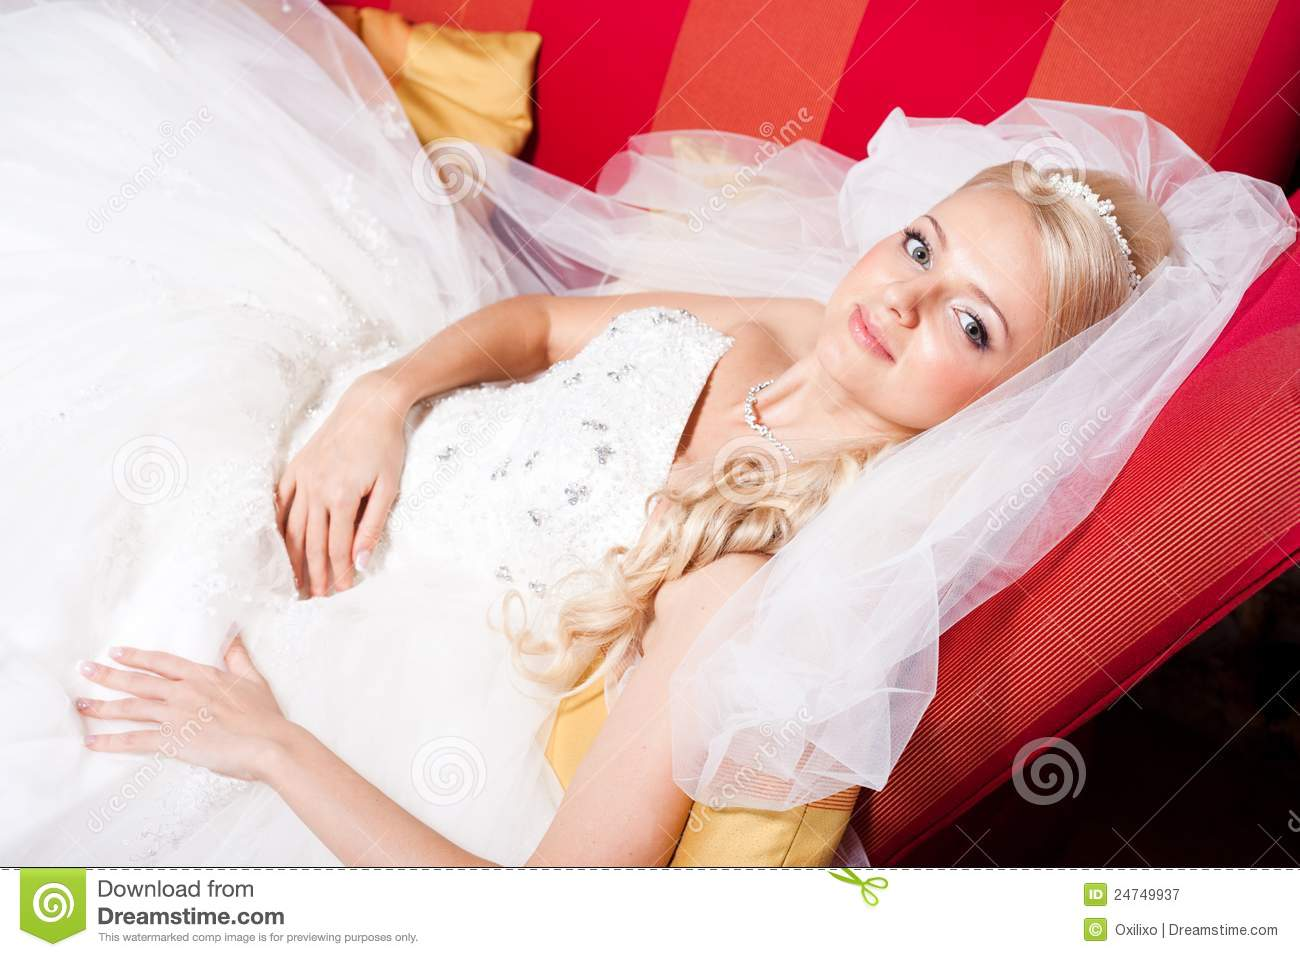 Beautiful bride wearing white wedding dress and veil lying on red sofa